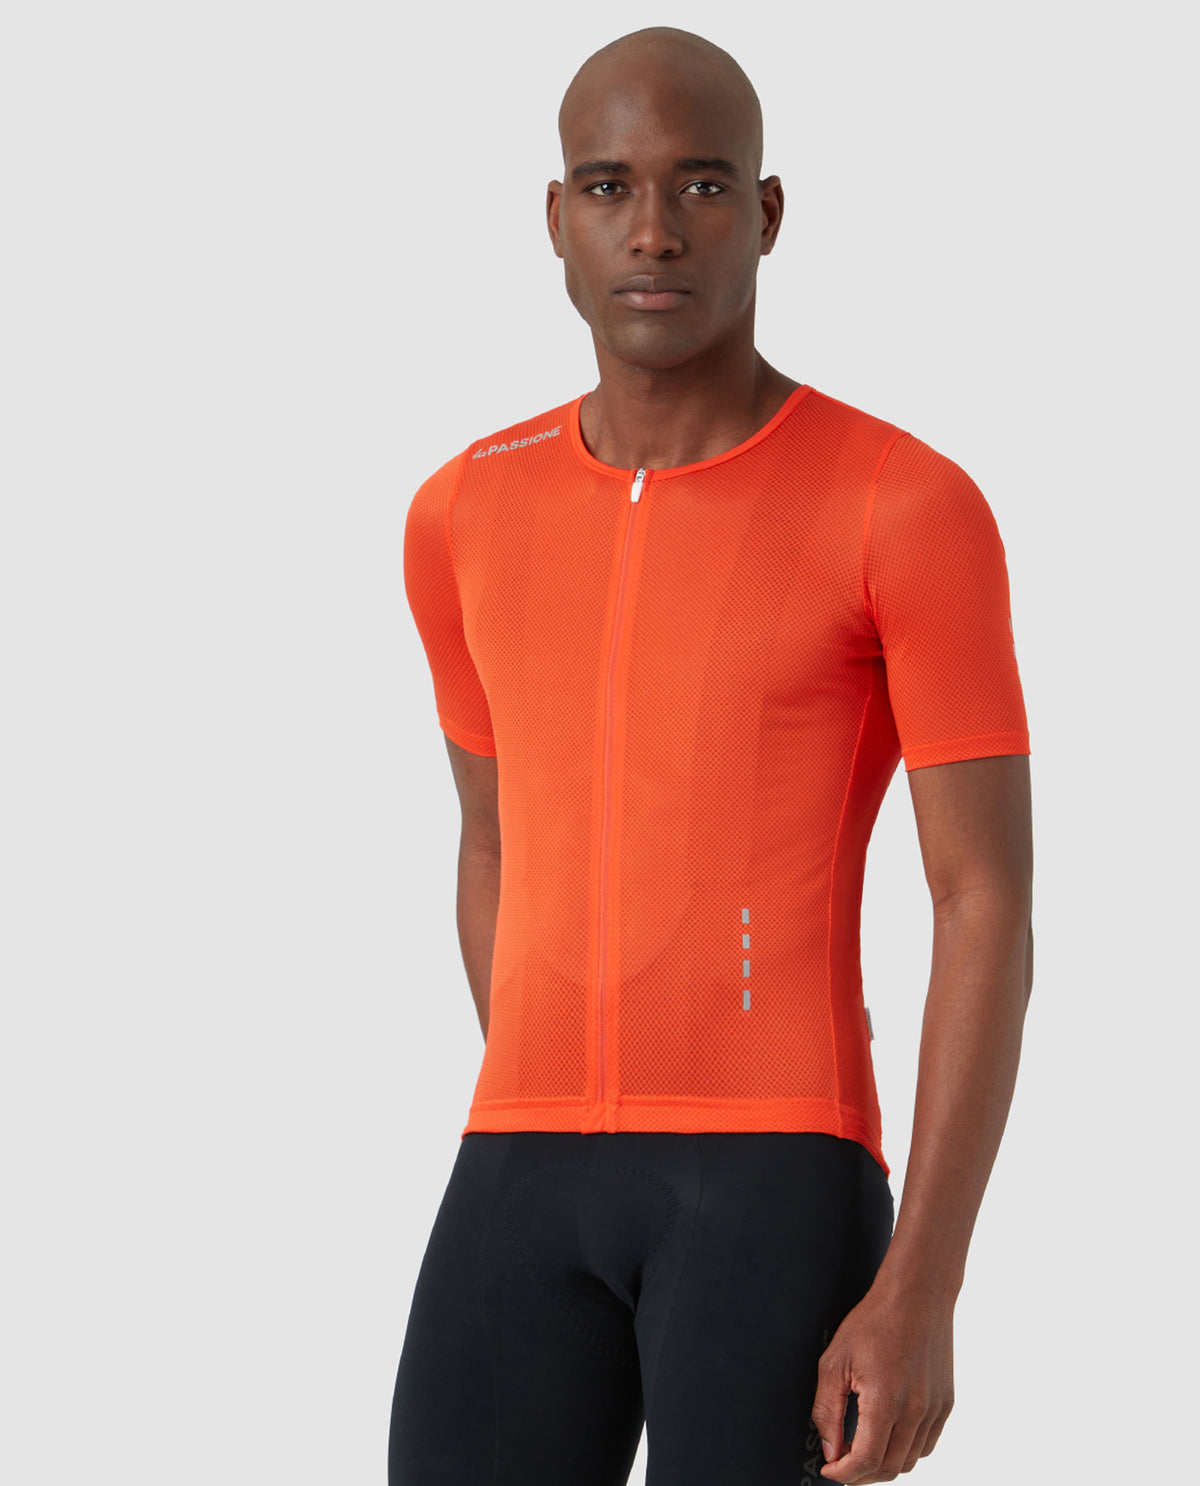 PSN Ultralight Jersey Orange